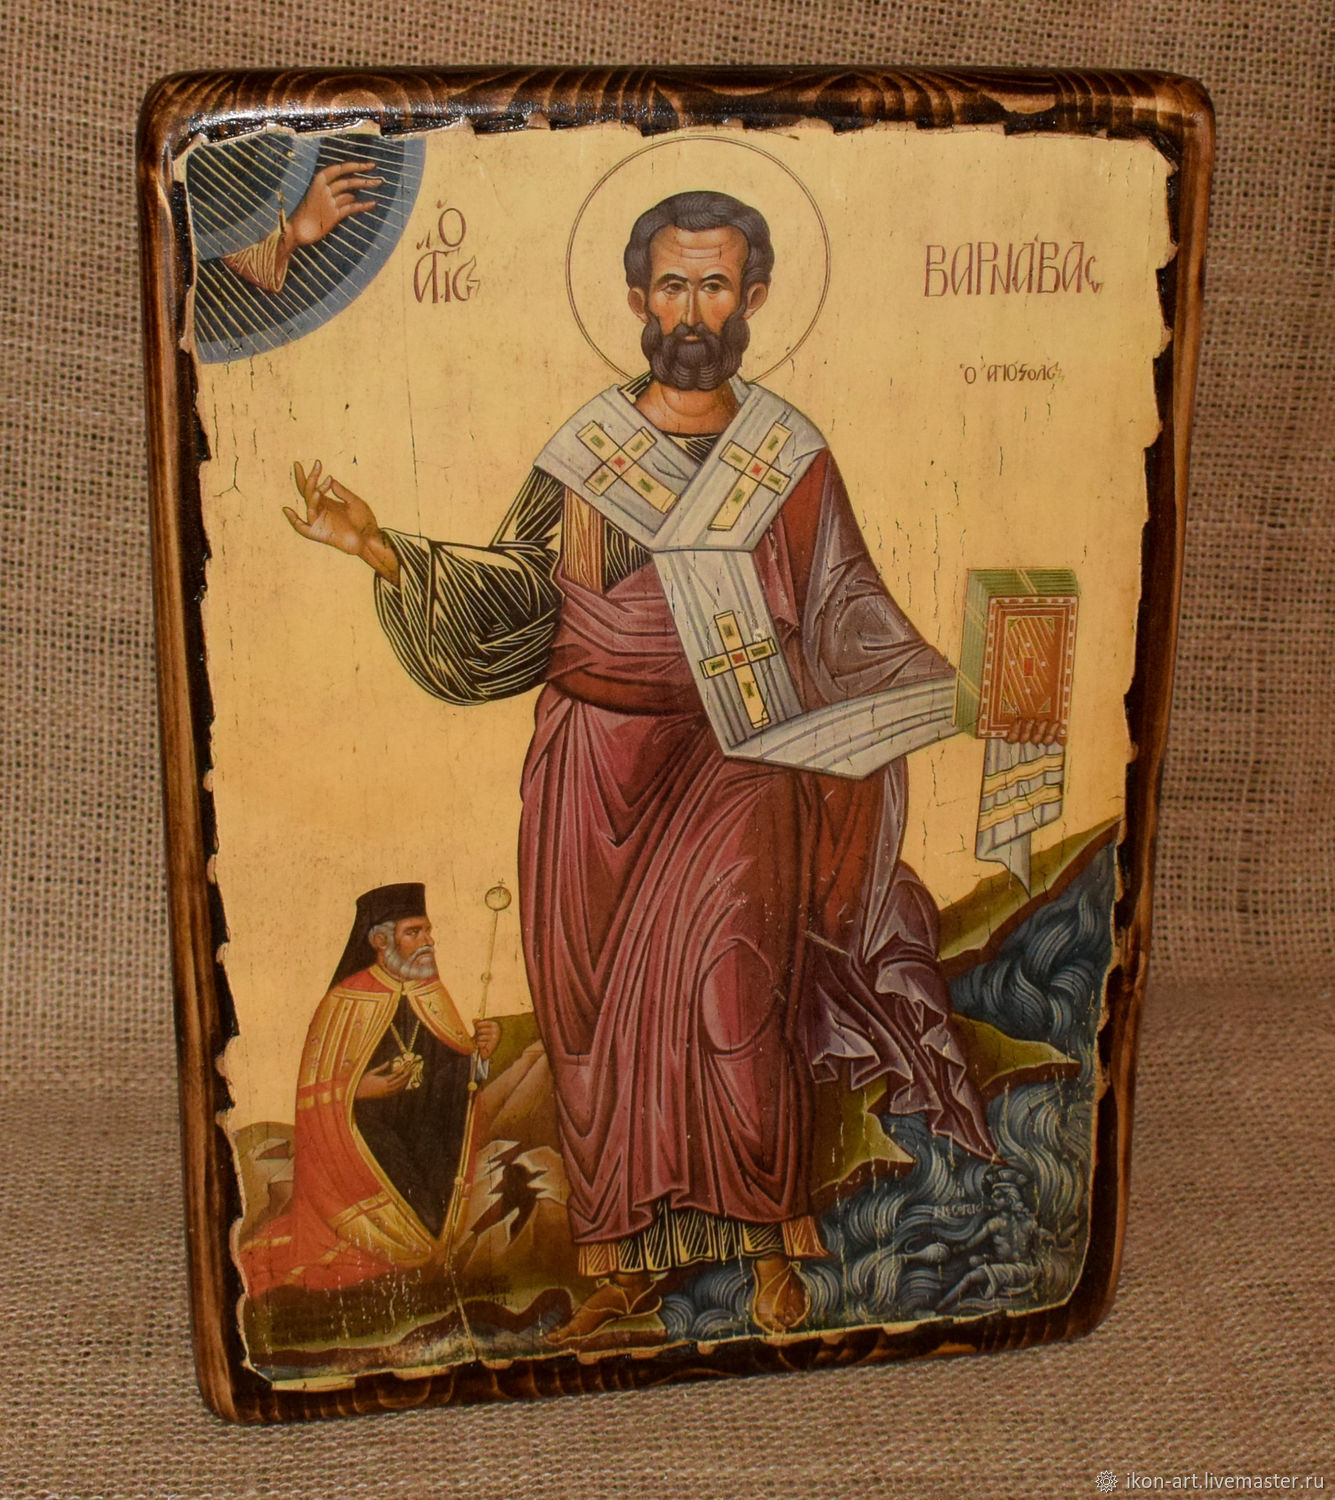 The wooden icon of the Holy Apostle Barnabas. The founder of the Church of Cyprus. icon handmade. Wood, gesso. Created using proprietary technology.